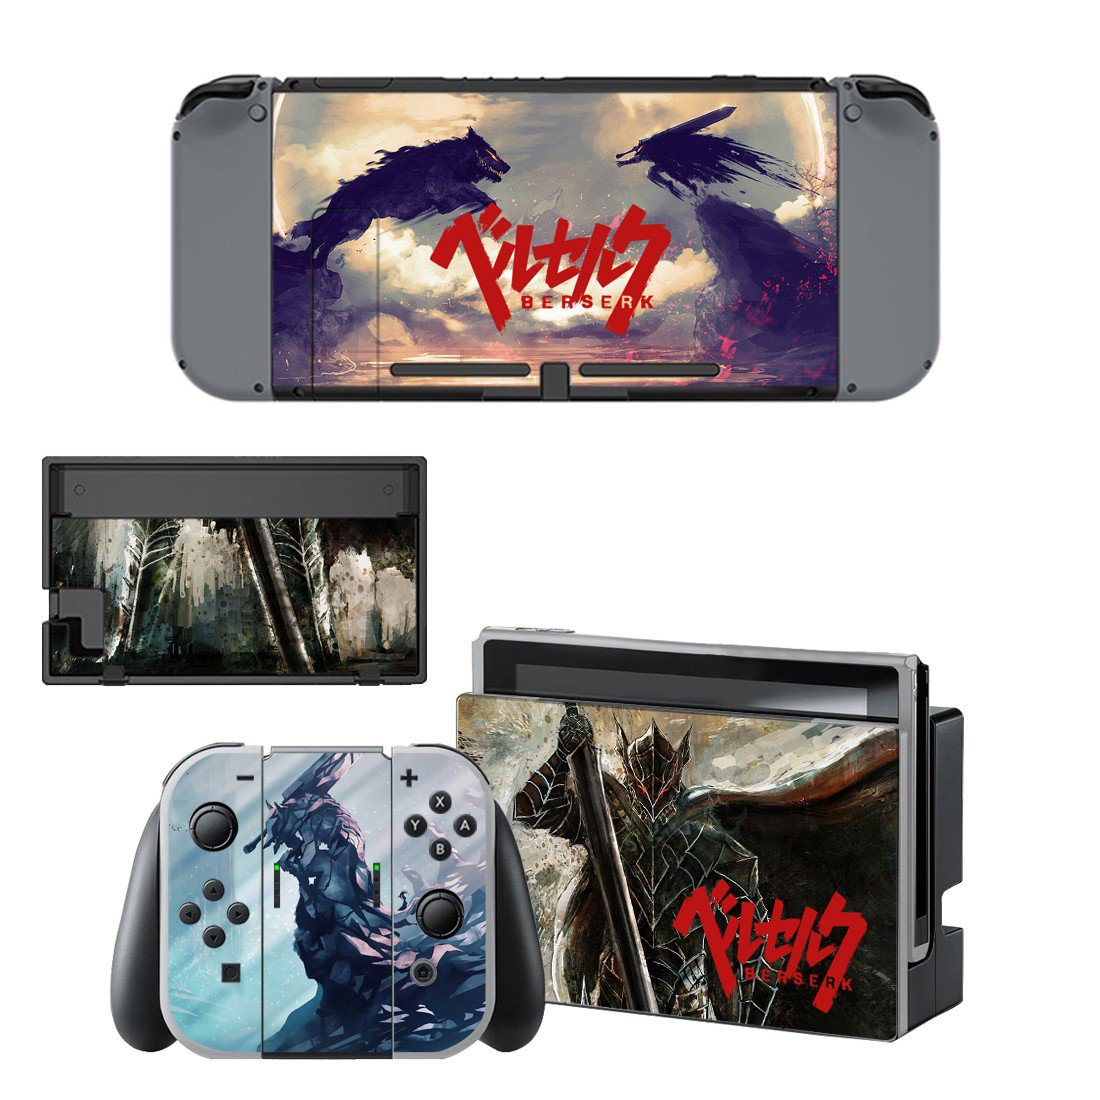 Berserk decal skin for Nintendo Switch Console & Controllers